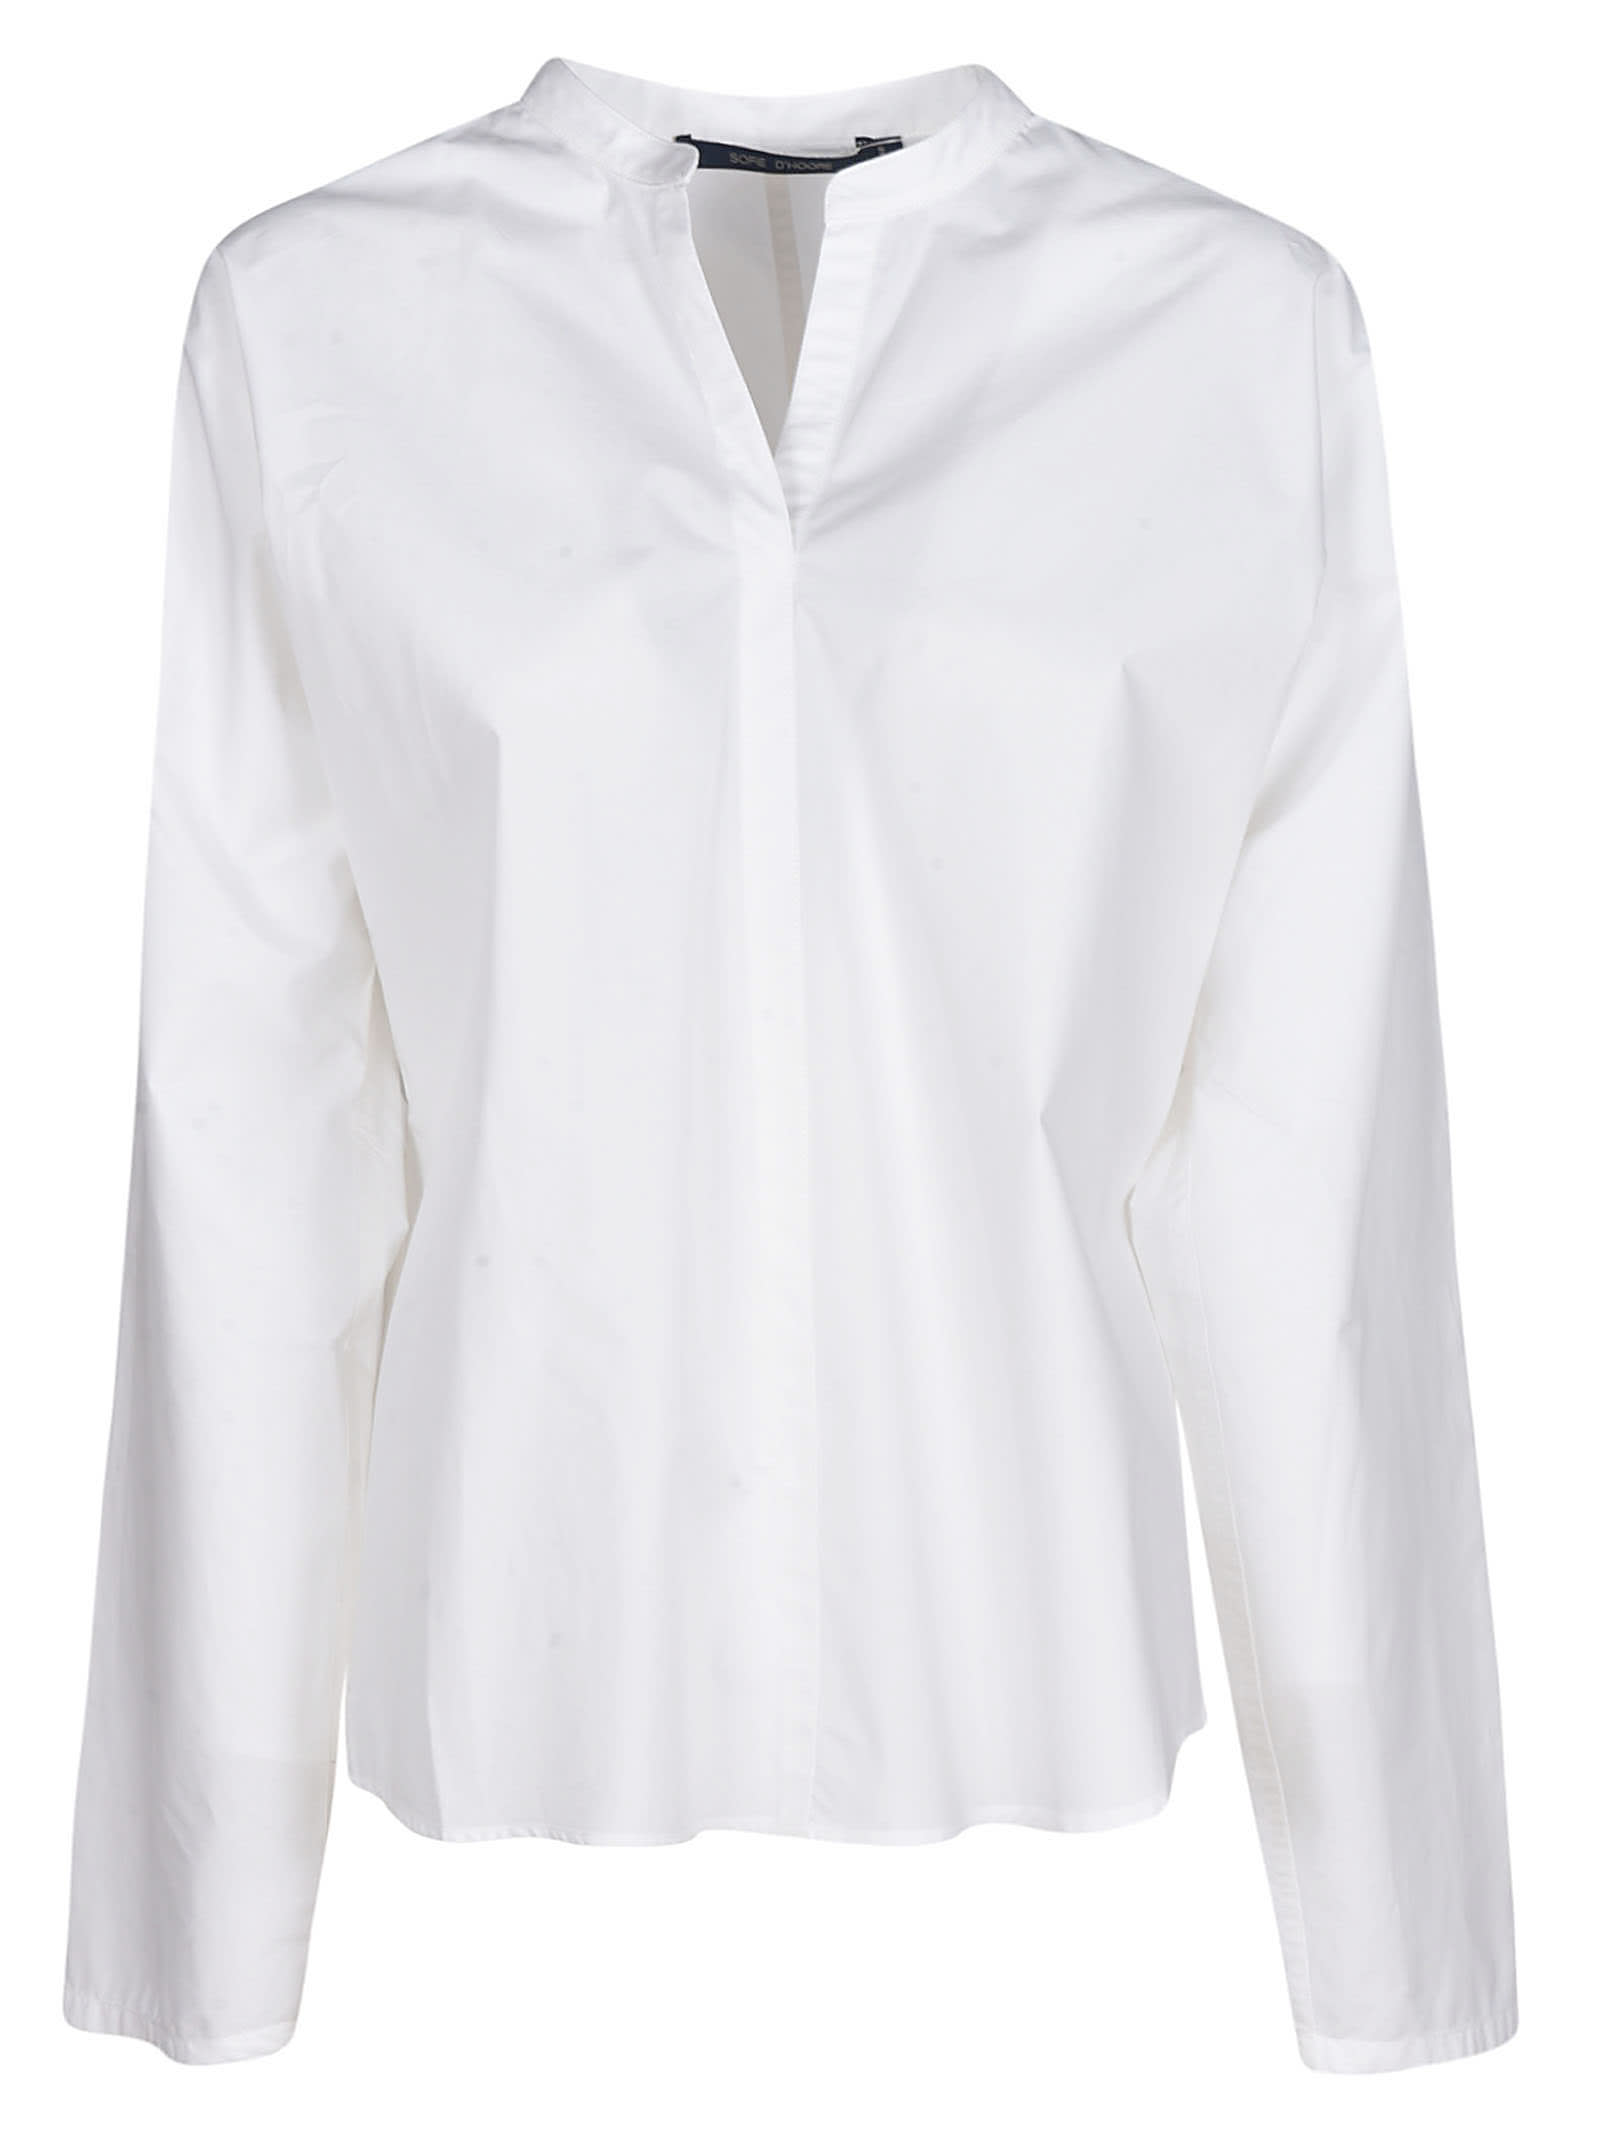 Sofie dHoore Stand-up Collar Shirt